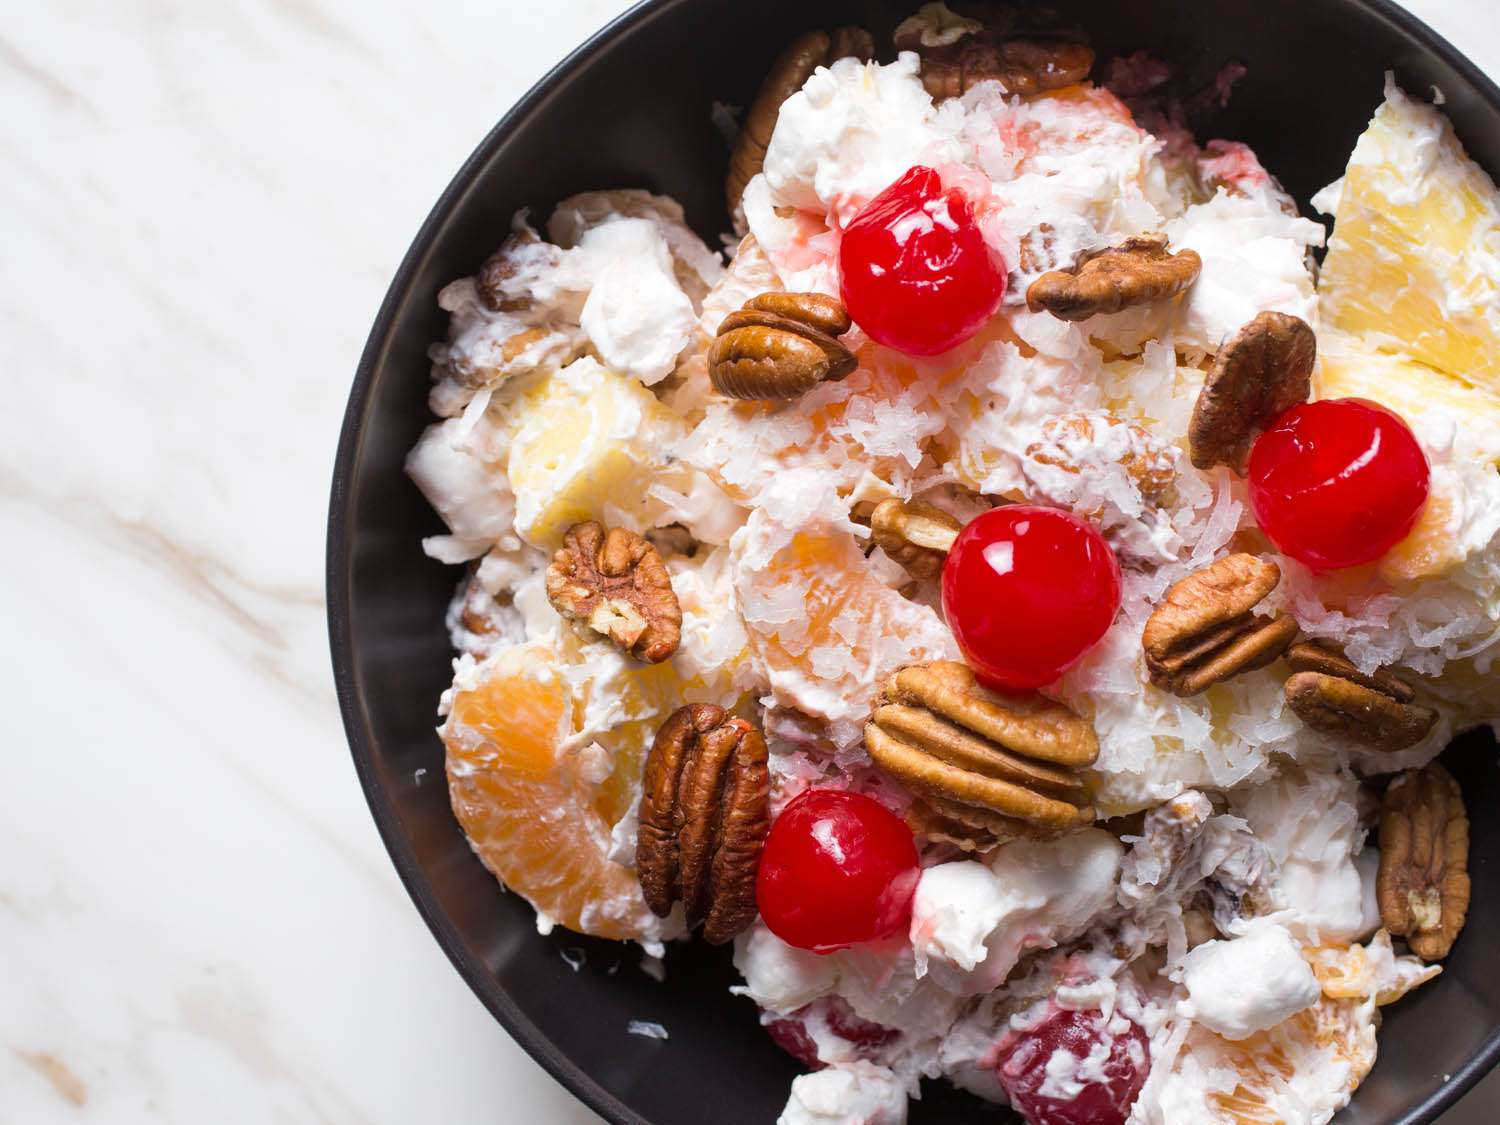 A bowl of ambrosia, a fruit salad with coconut, pineapple, pecans, orange segments, mini-marshmallows, and cherries.